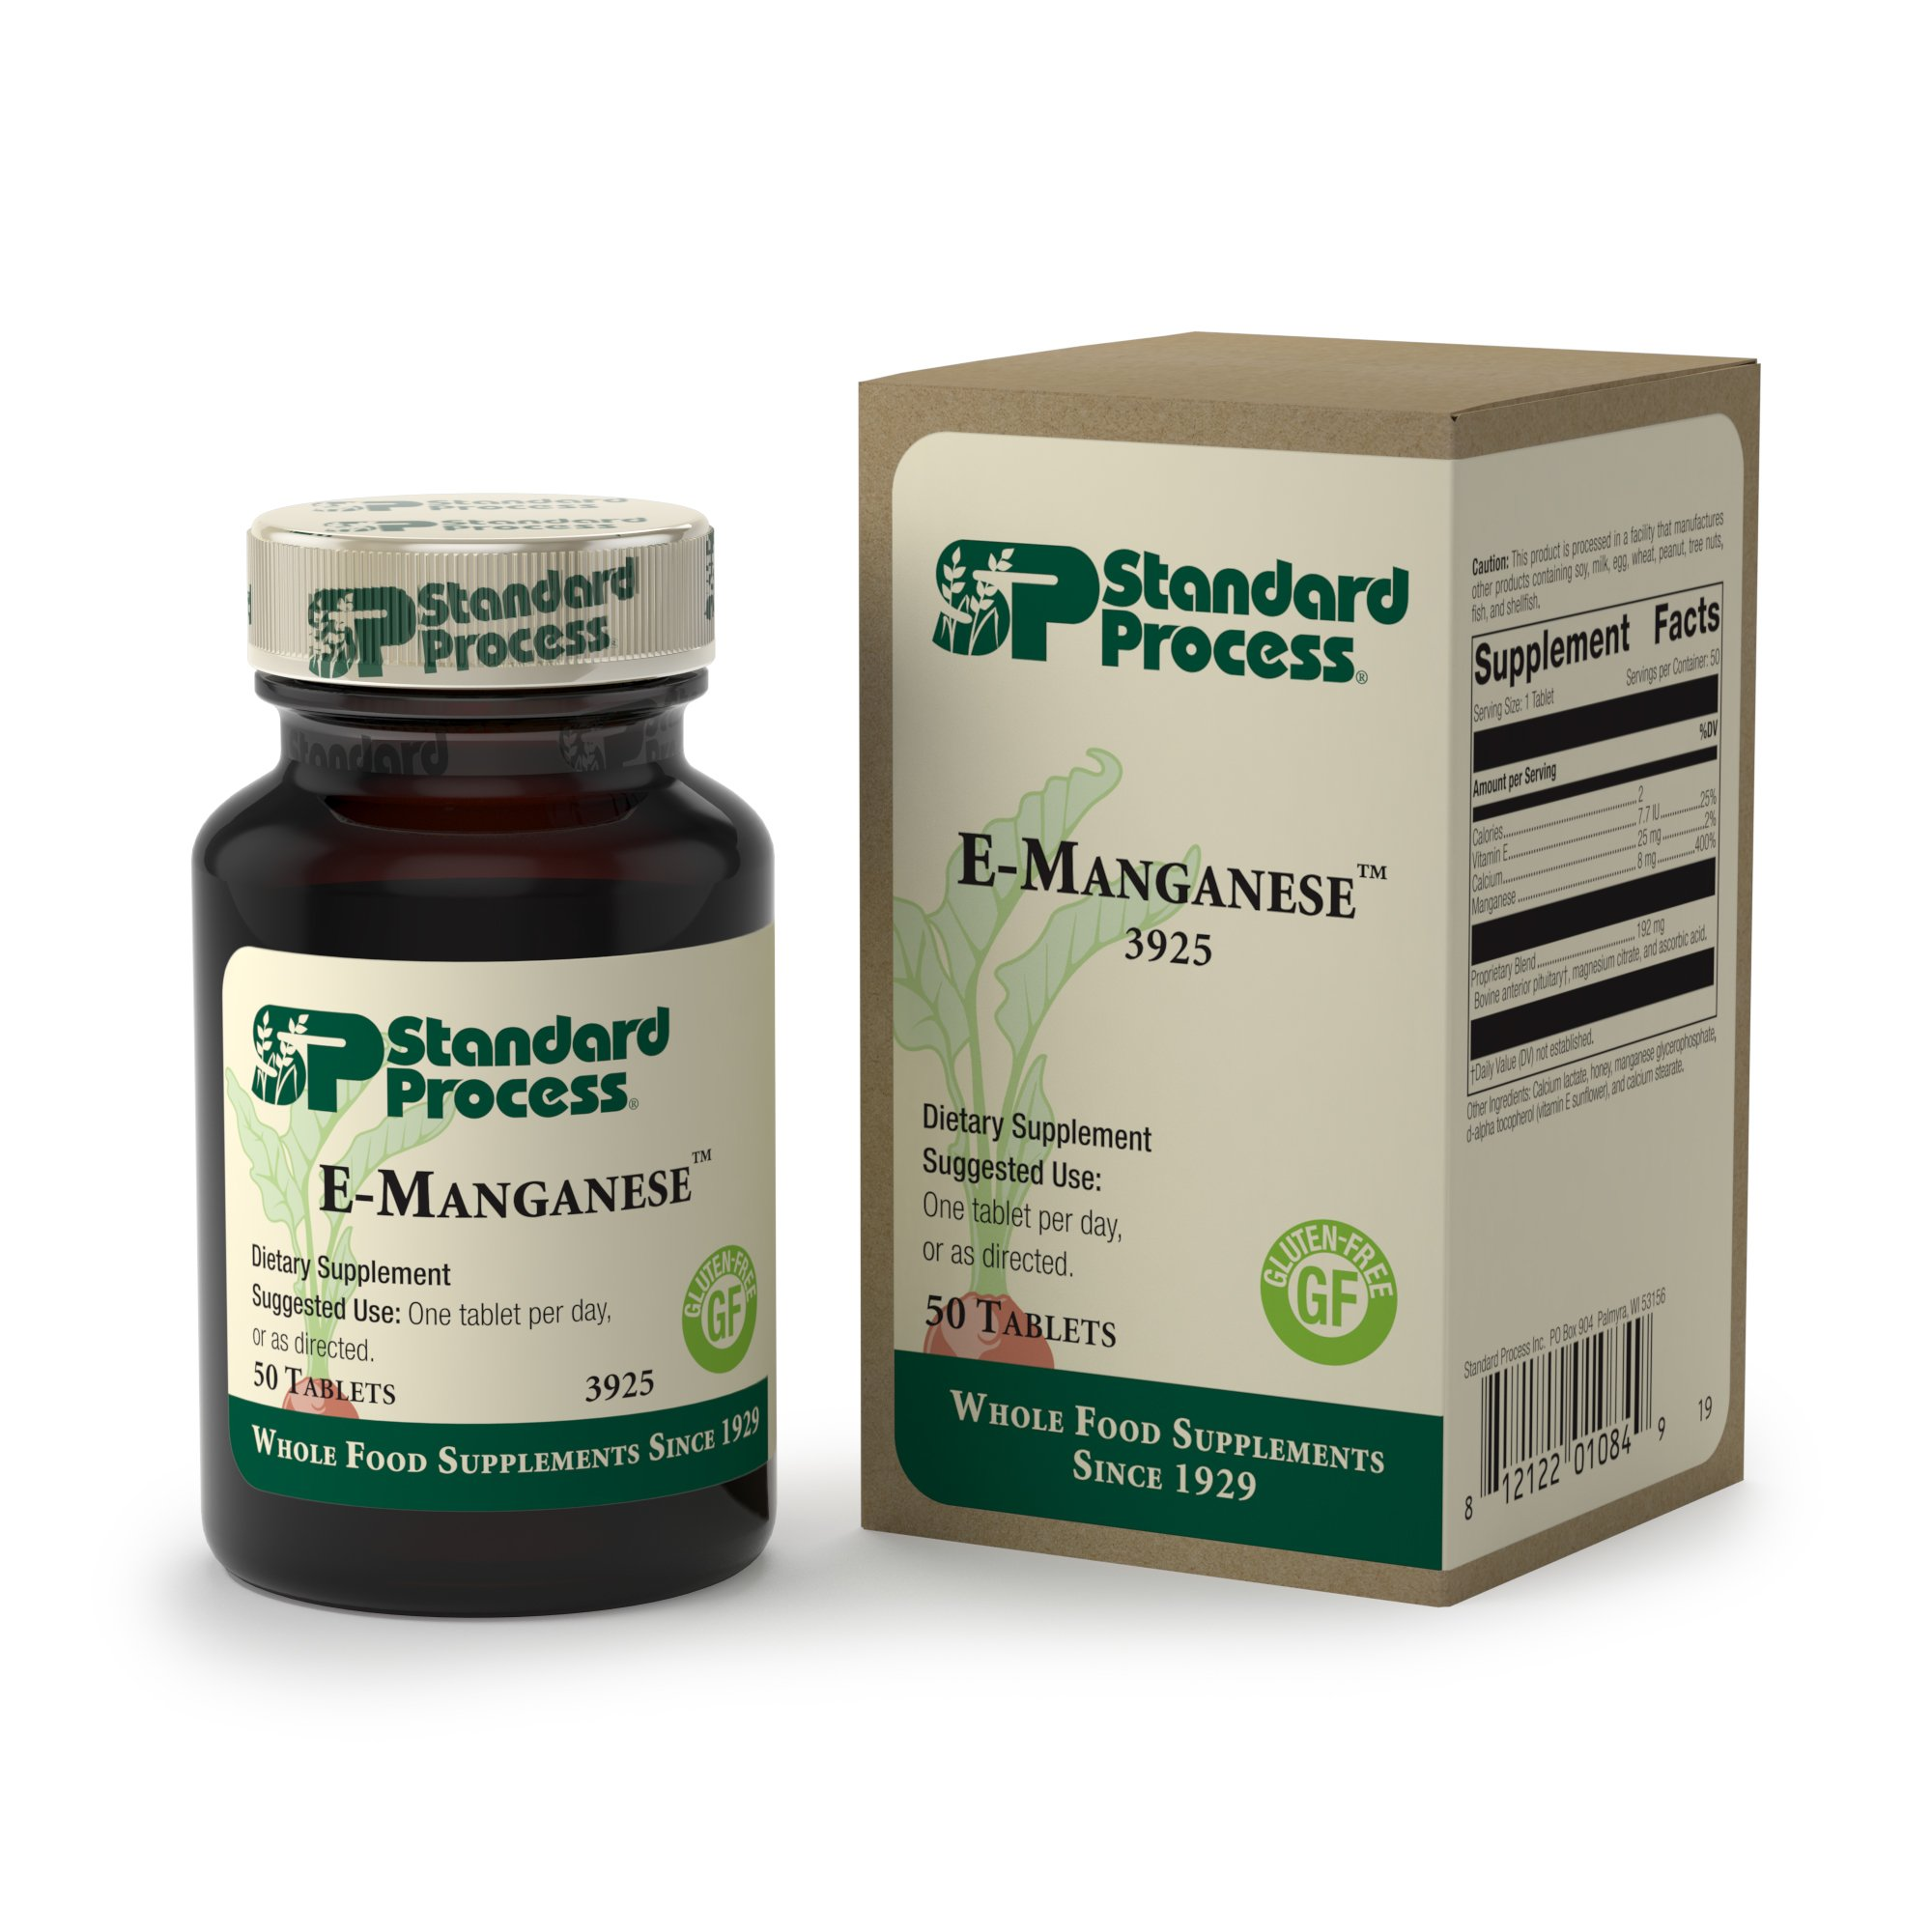 Standard Process - E-Manganese - Supports Healthy Pituitary Gland Function, Provides Vitamin E, Calcium, and Manganese, Gluten Free - 50 Tablets